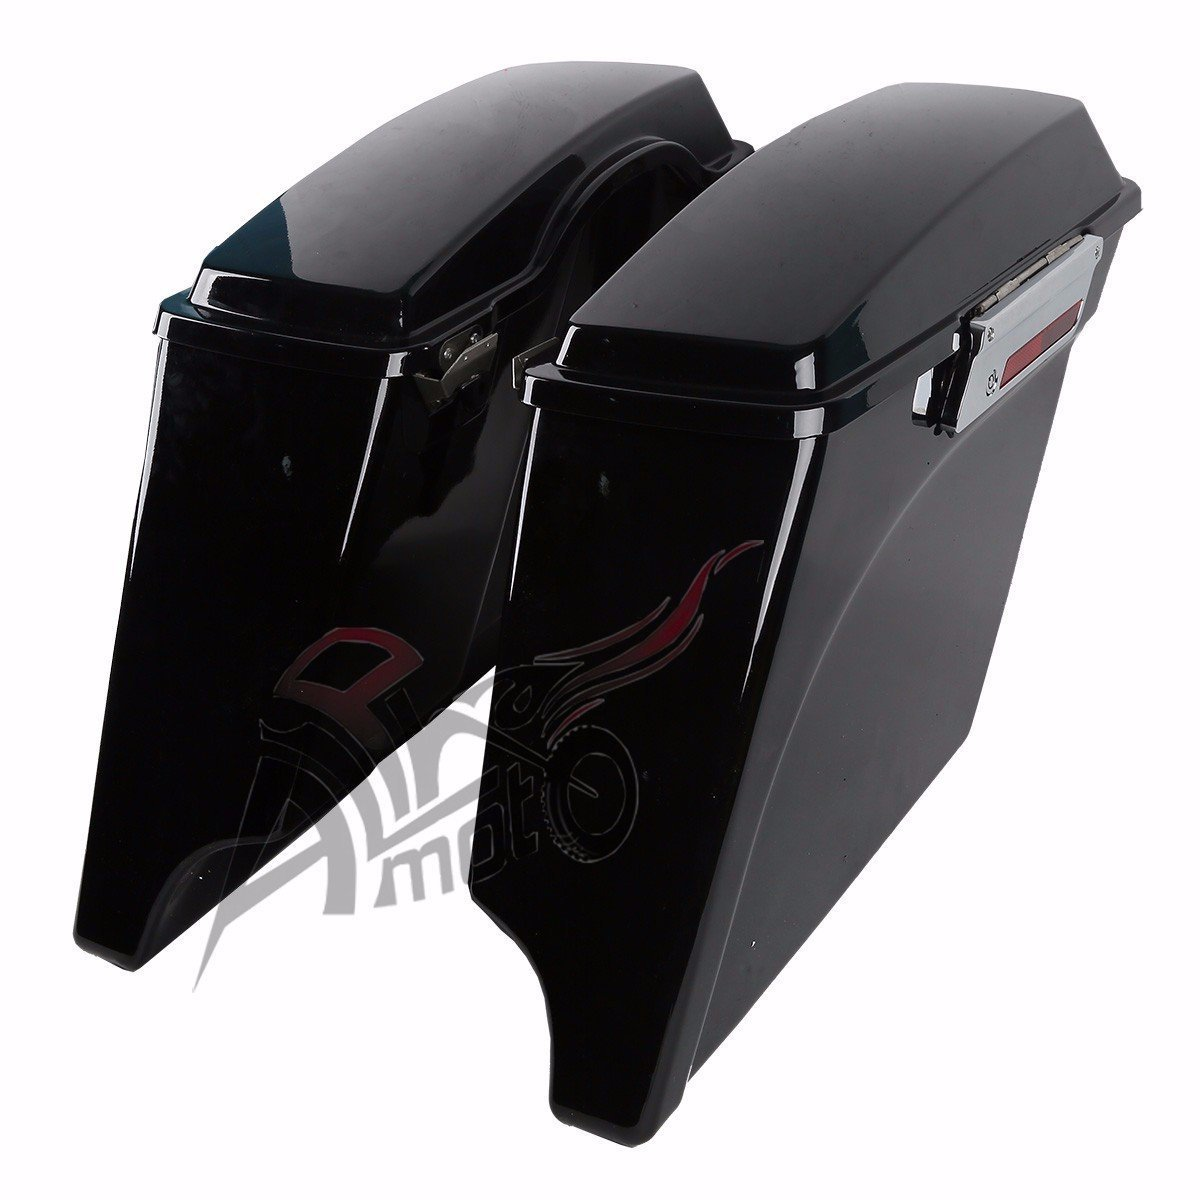 New 5'' Vivid Black Stretched Extended Saddlebags Saddlebag with Lid Latch Keys For Harley Touring FLH FLT Electra Glide Road king Ultra Street 1994 - 2013